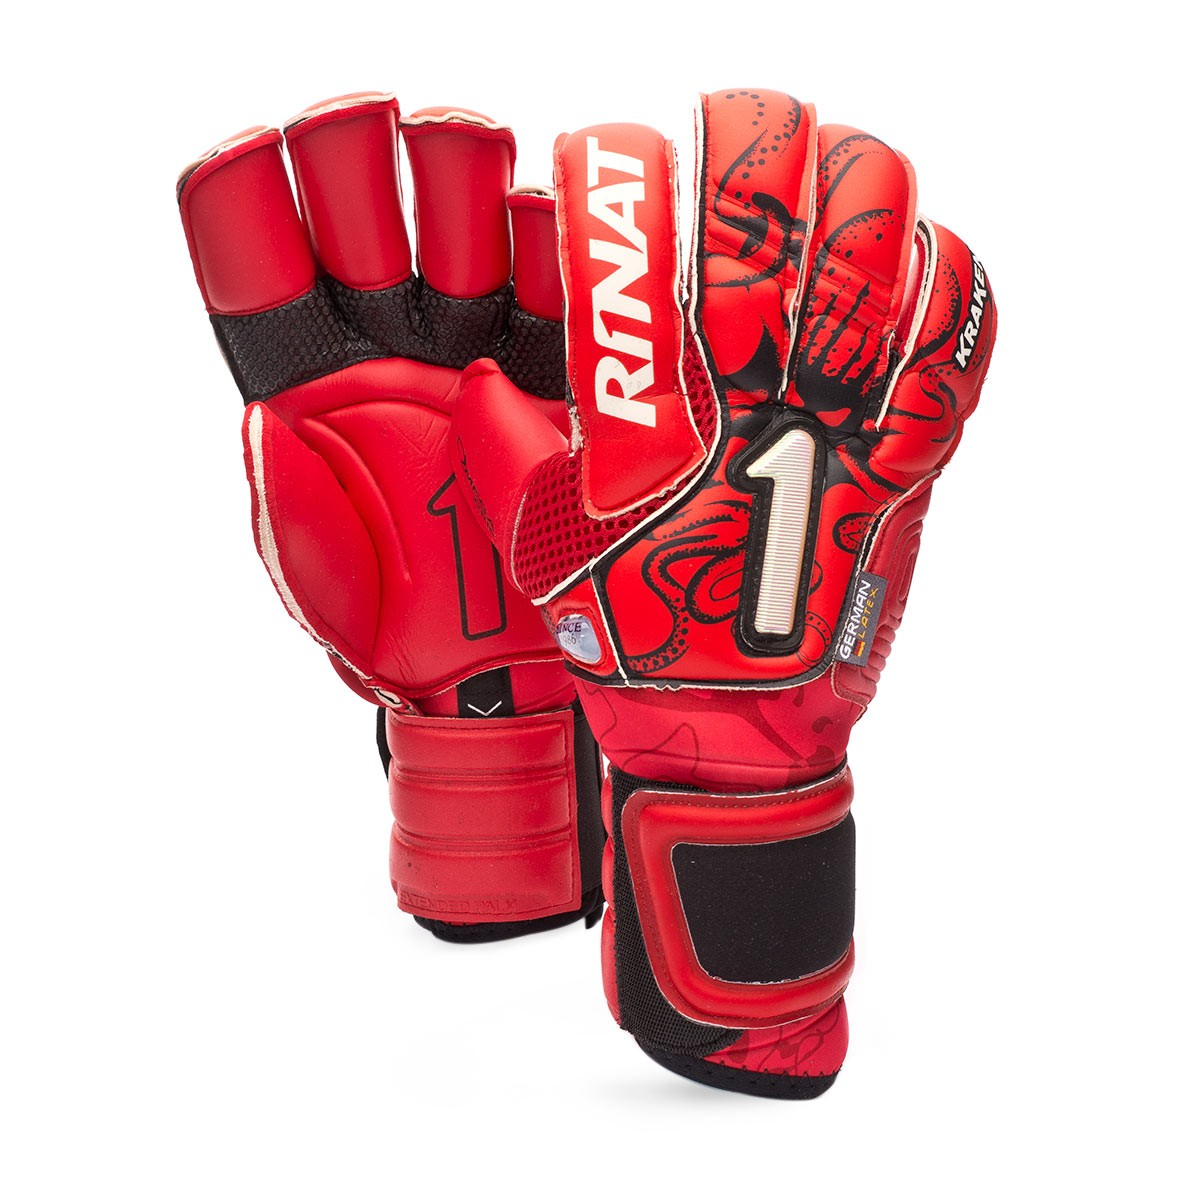 6d823e79c3d Glove Rinat Kraken NRG Neo Pro Red - Football store Fútbol Emotion